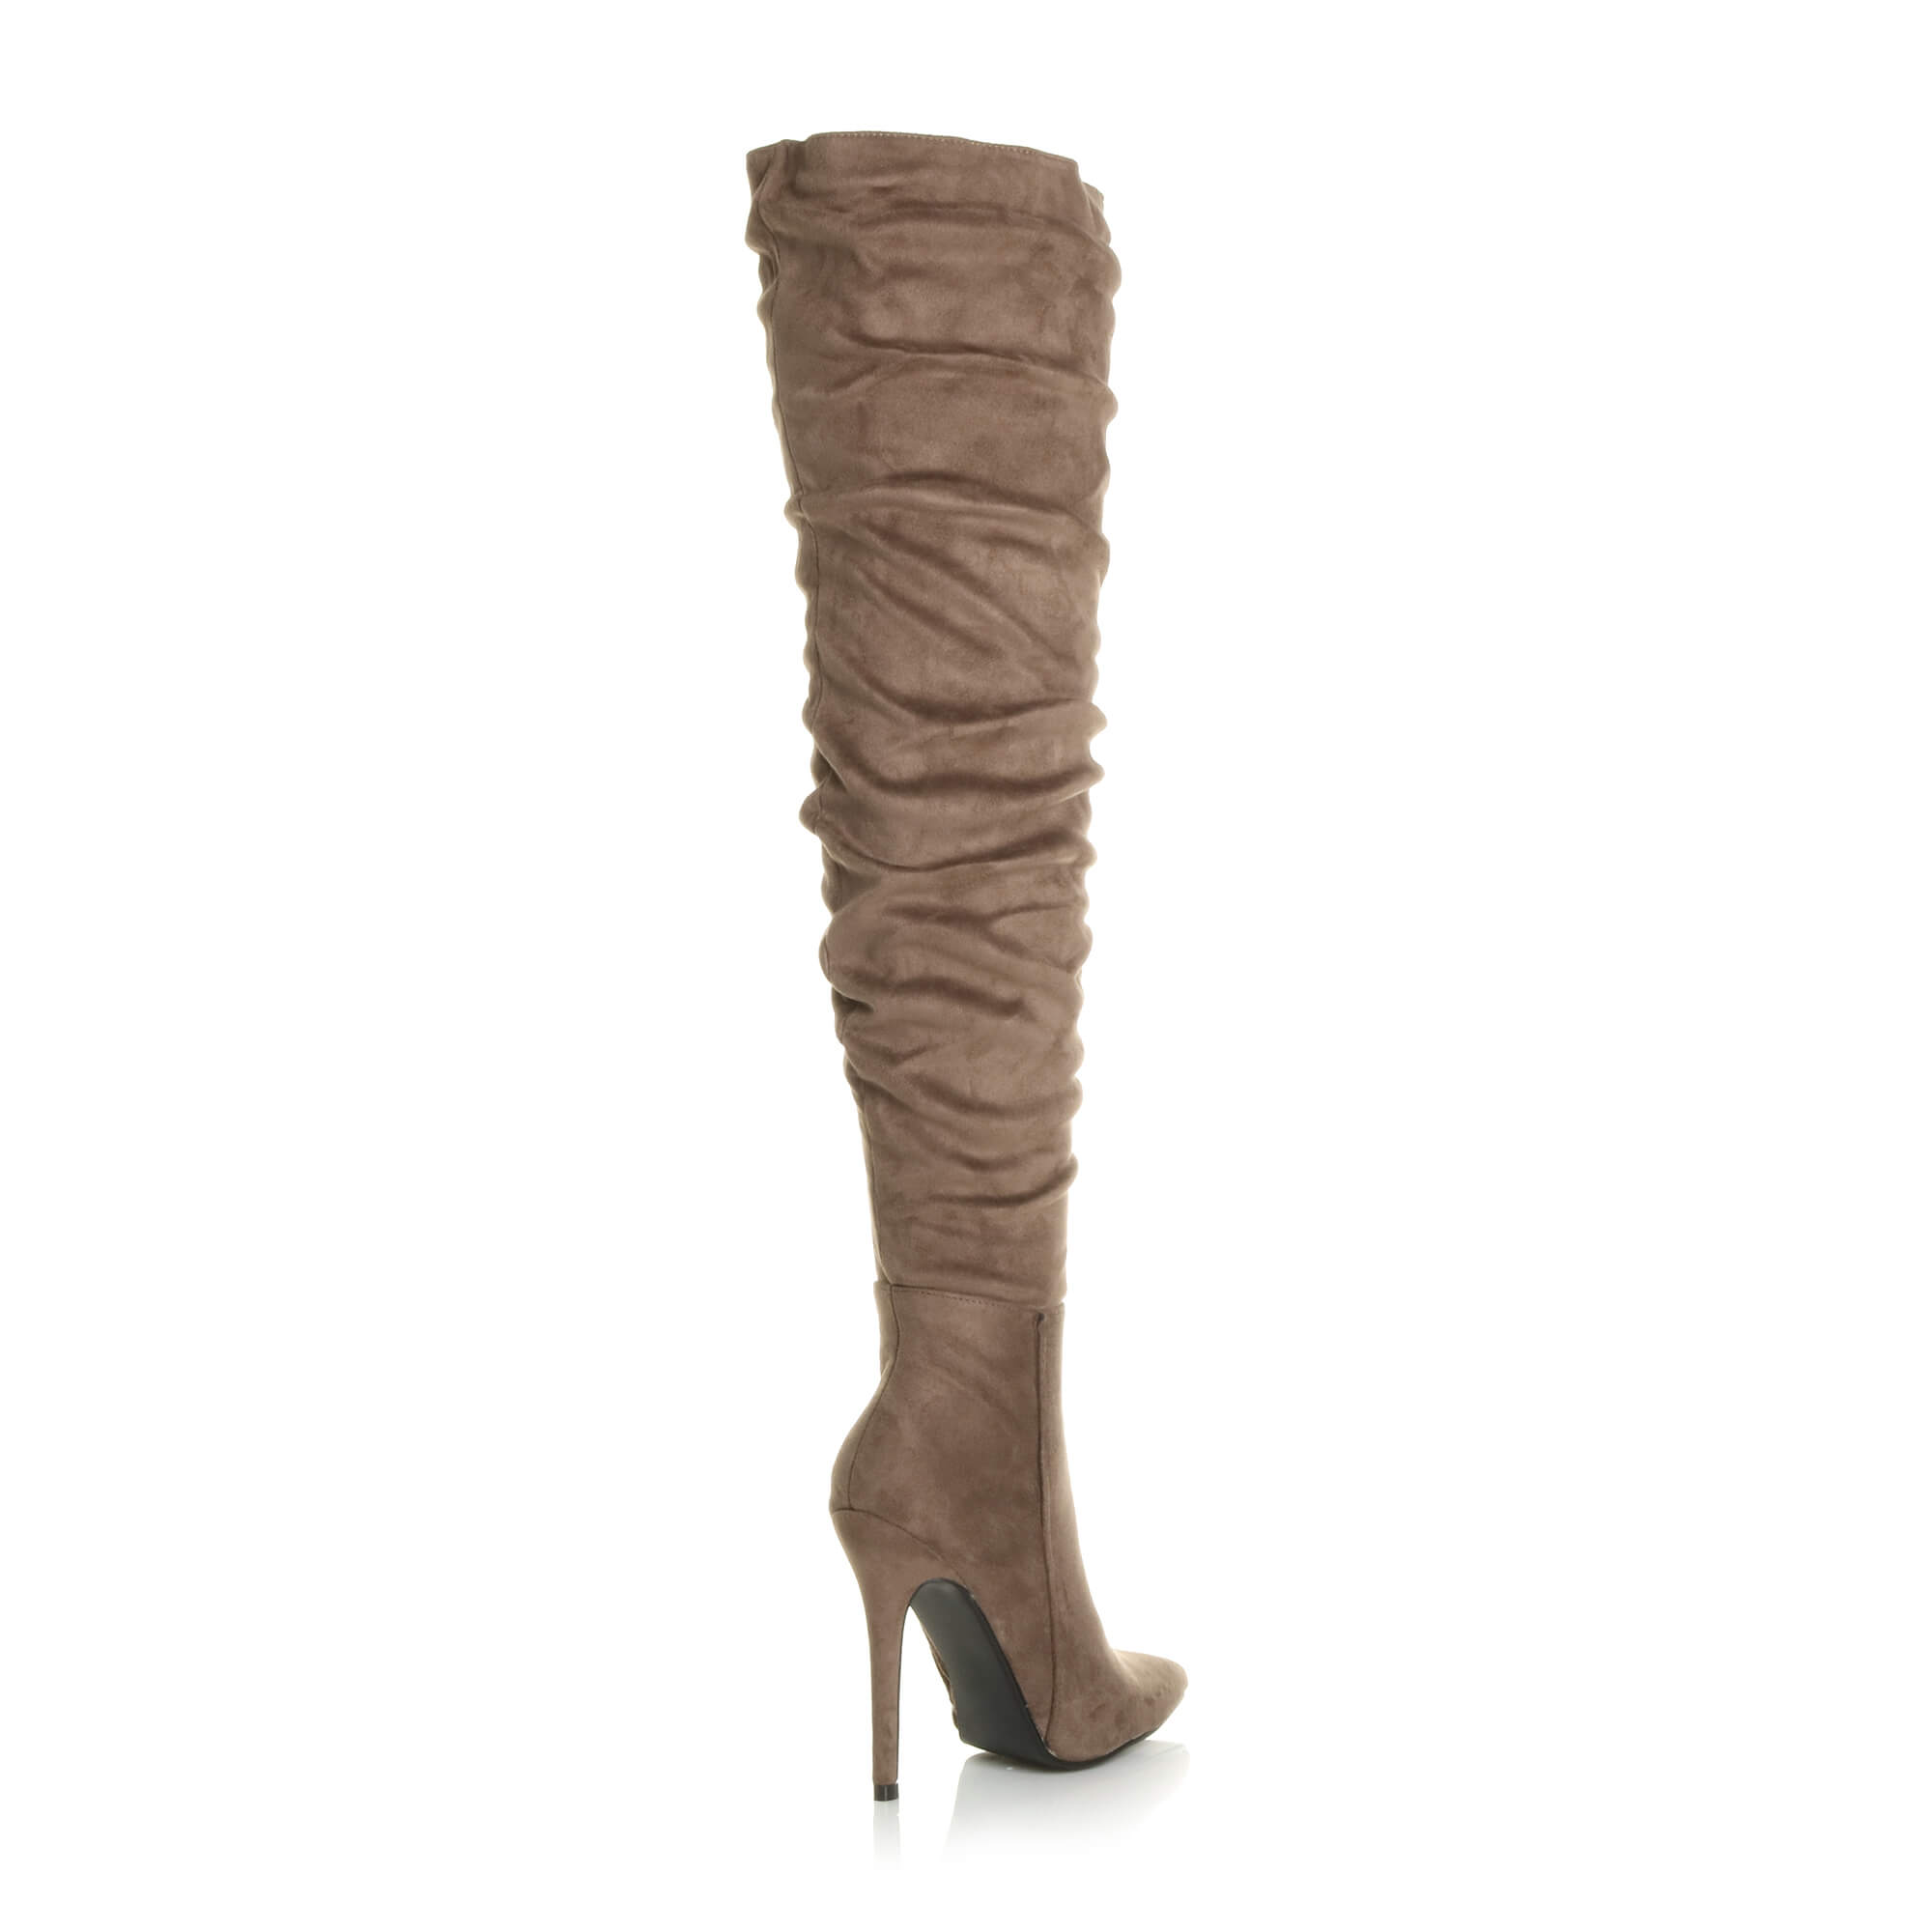 WOMENS-LADIES-SLOUCH-RUCHED-OVER-THE-KNEE-POINTED-THIGH-HIGH-HEELED-BOOTS-SIZE thumbnail 17